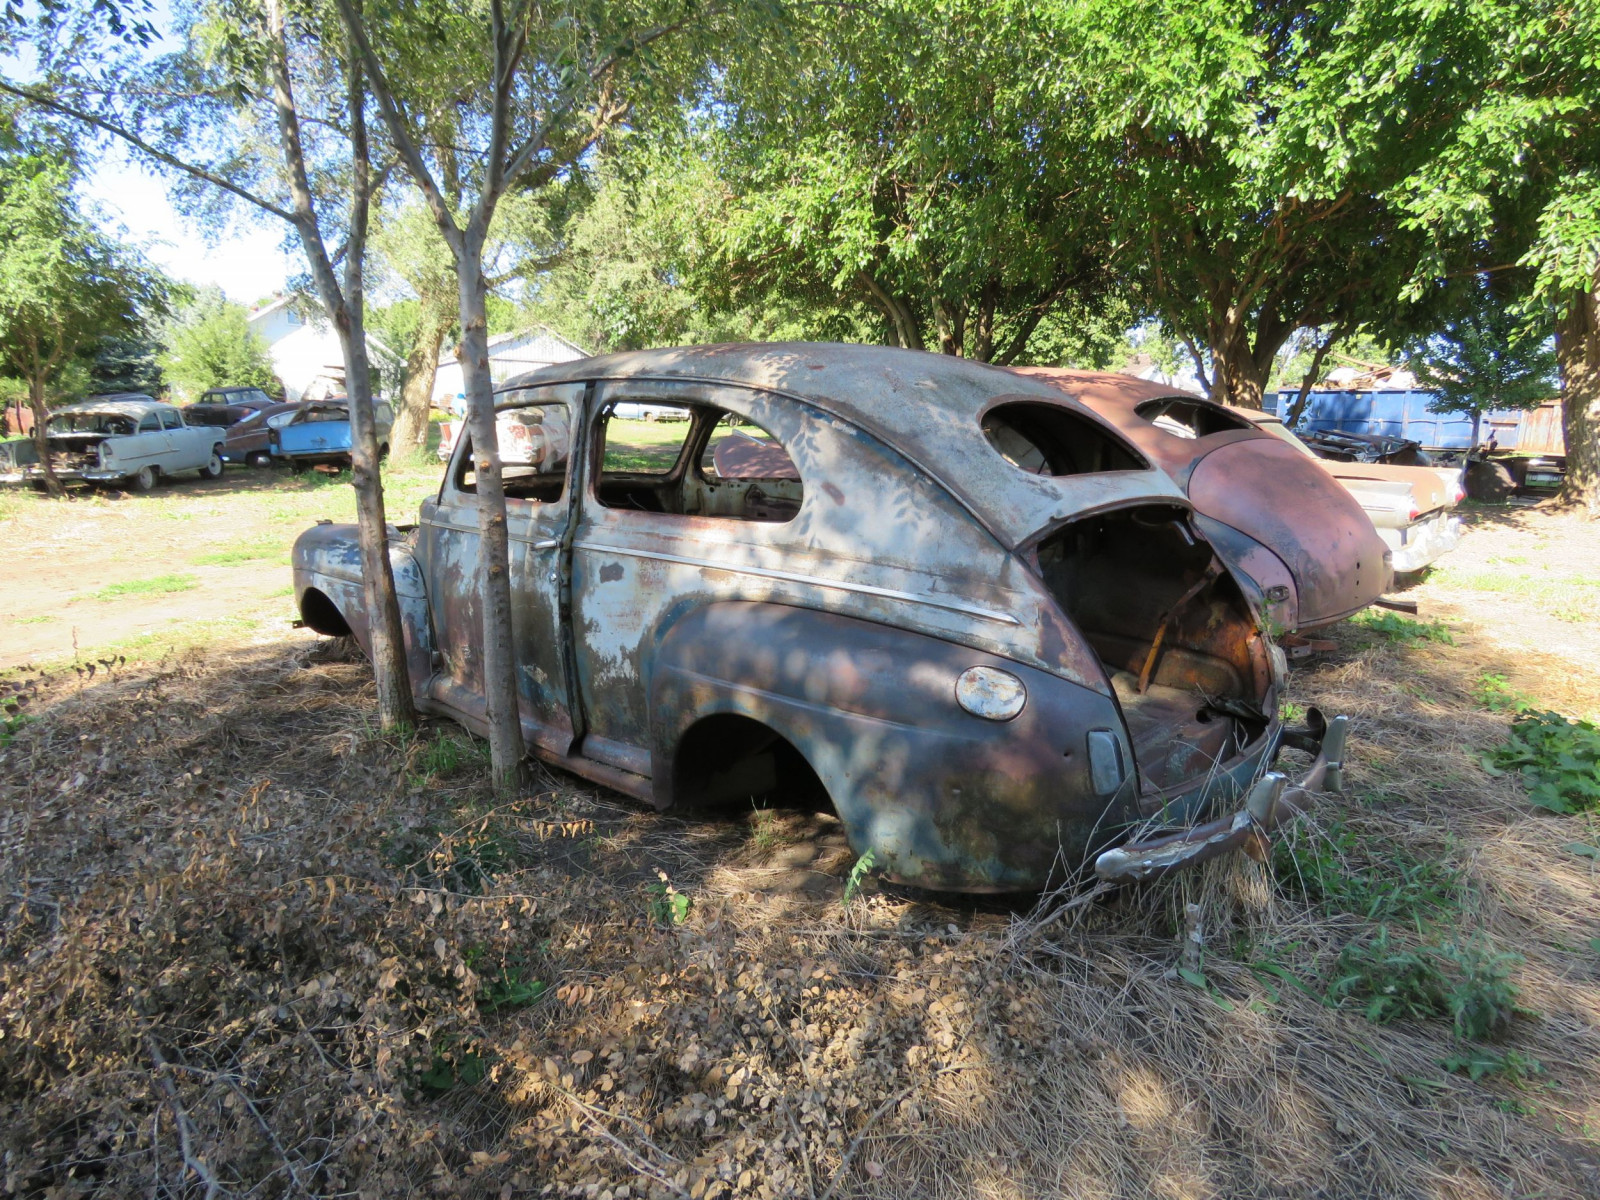 1941 Ford 2dr Sedan Body for Project or Parts - Image 3